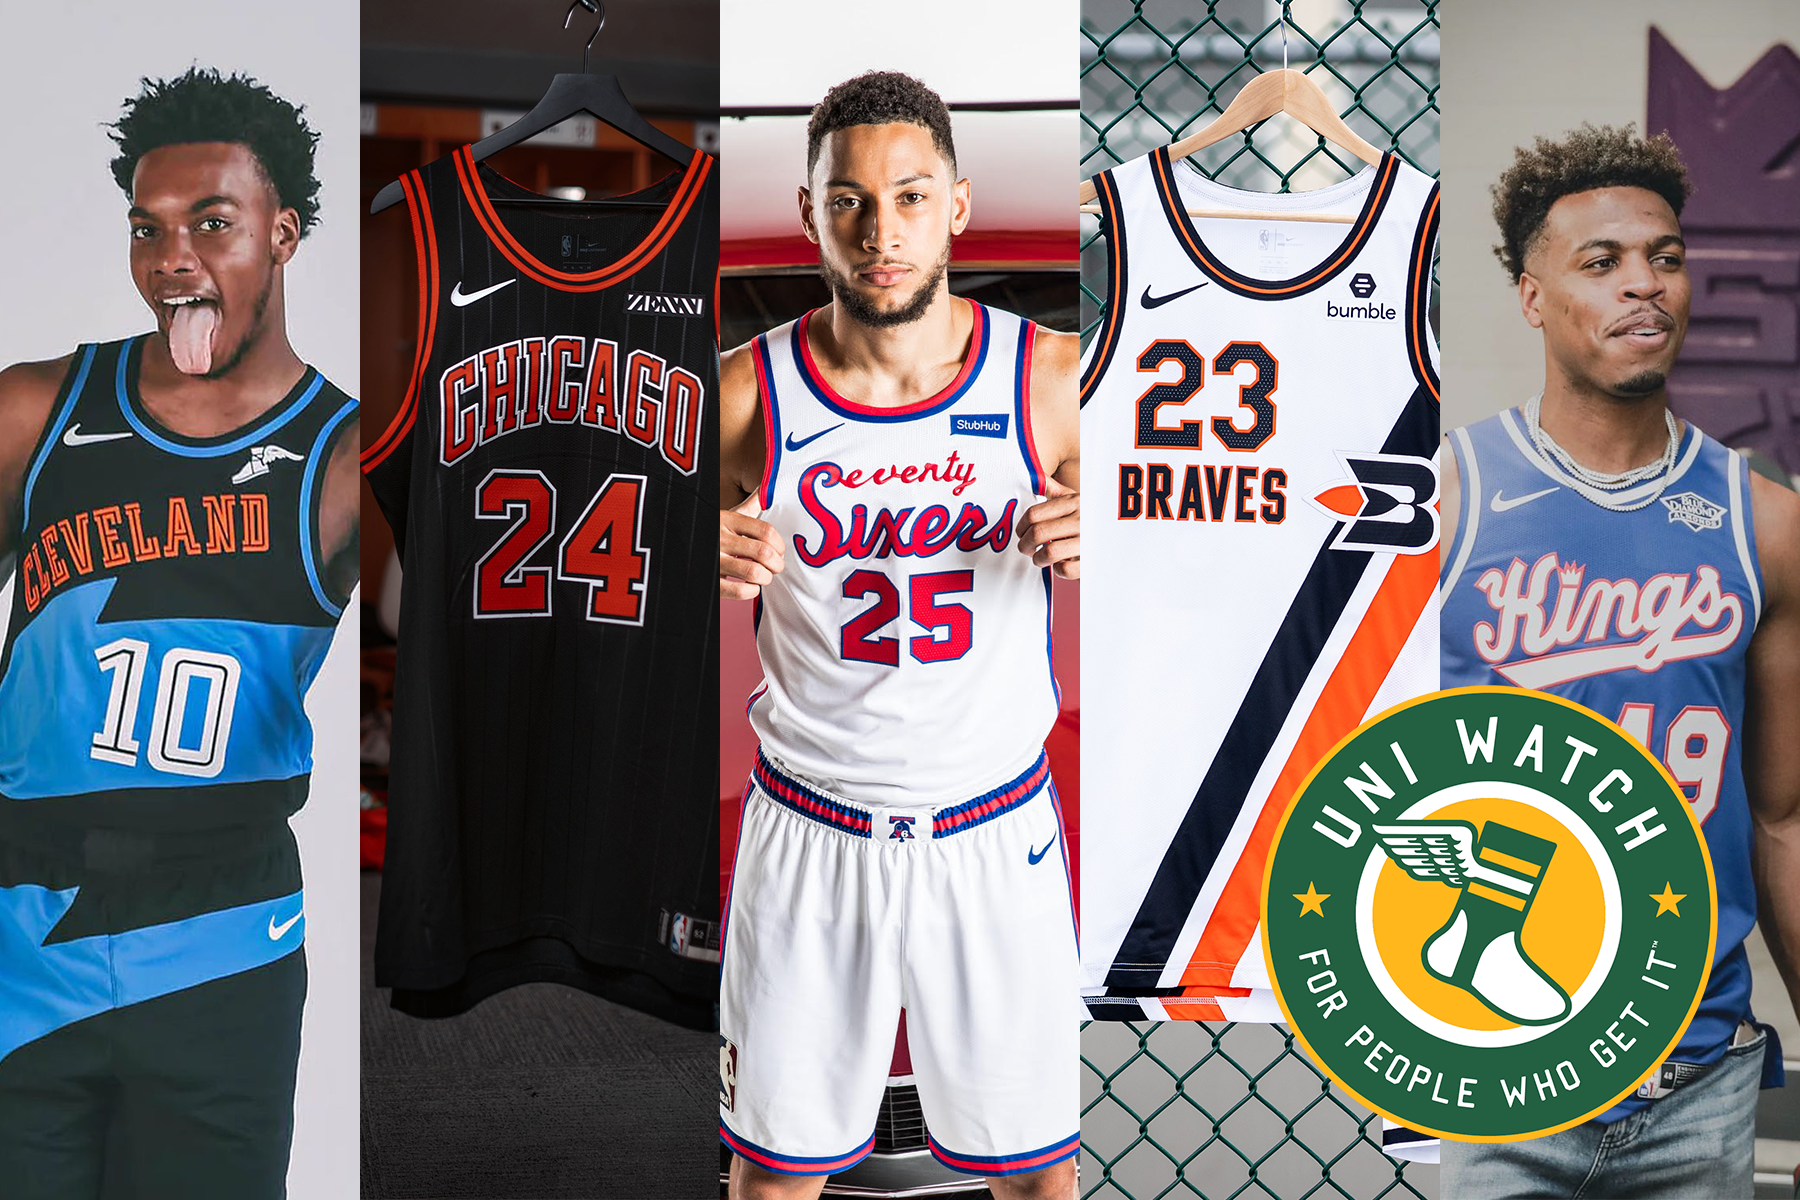 The 2019 Uni Watch NBA Season Preview